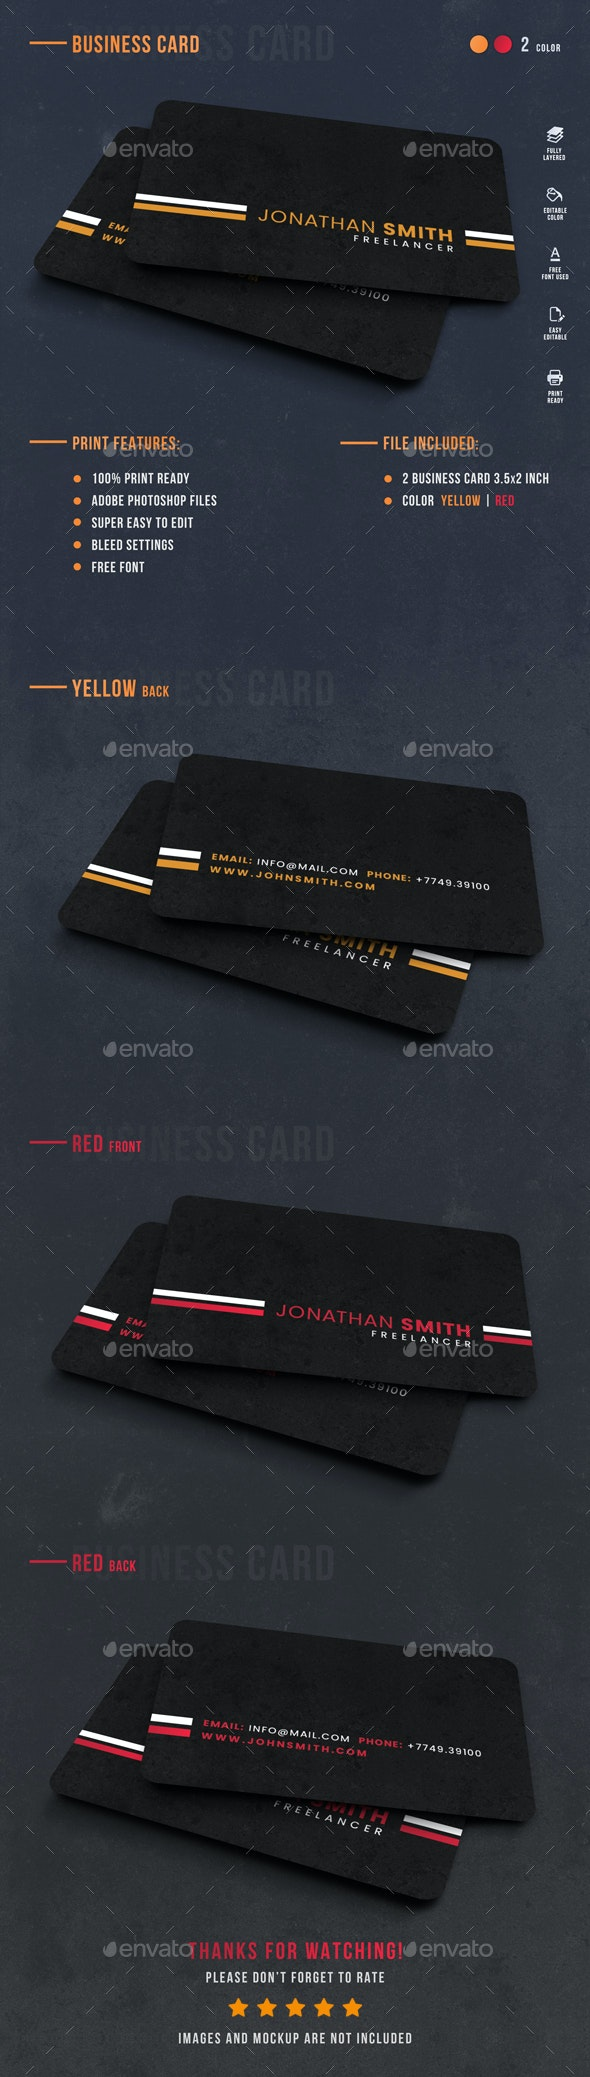 Freelancer Personal Card - Corporate Business Cards